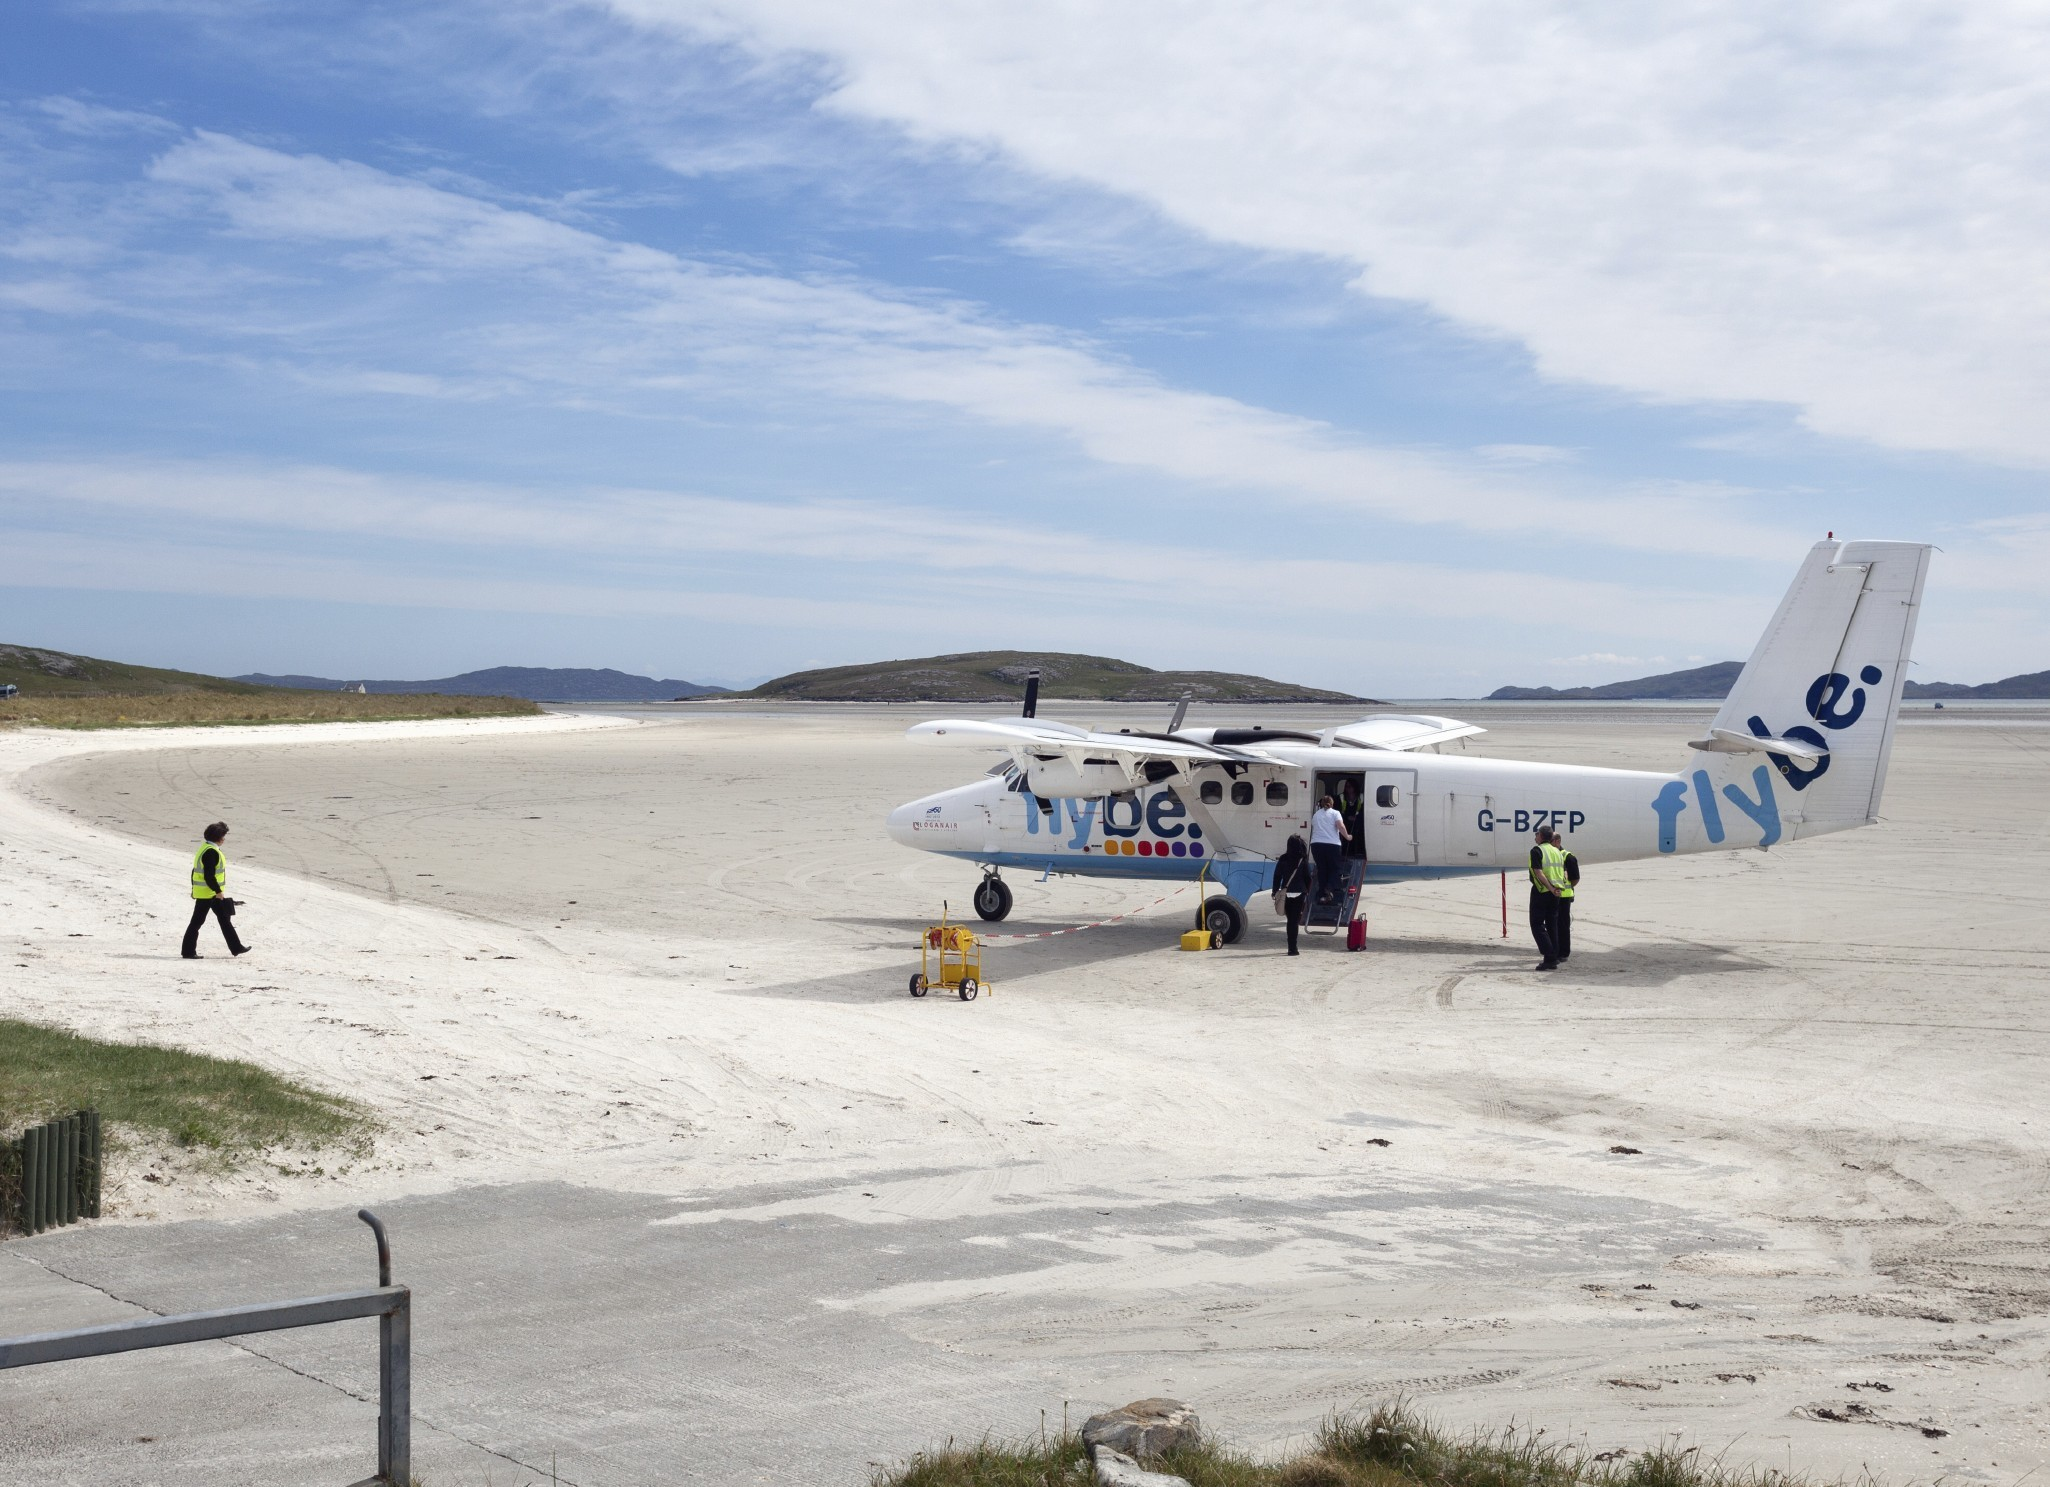 The sandy runway of Barra's airport (Andrea Ricordi)